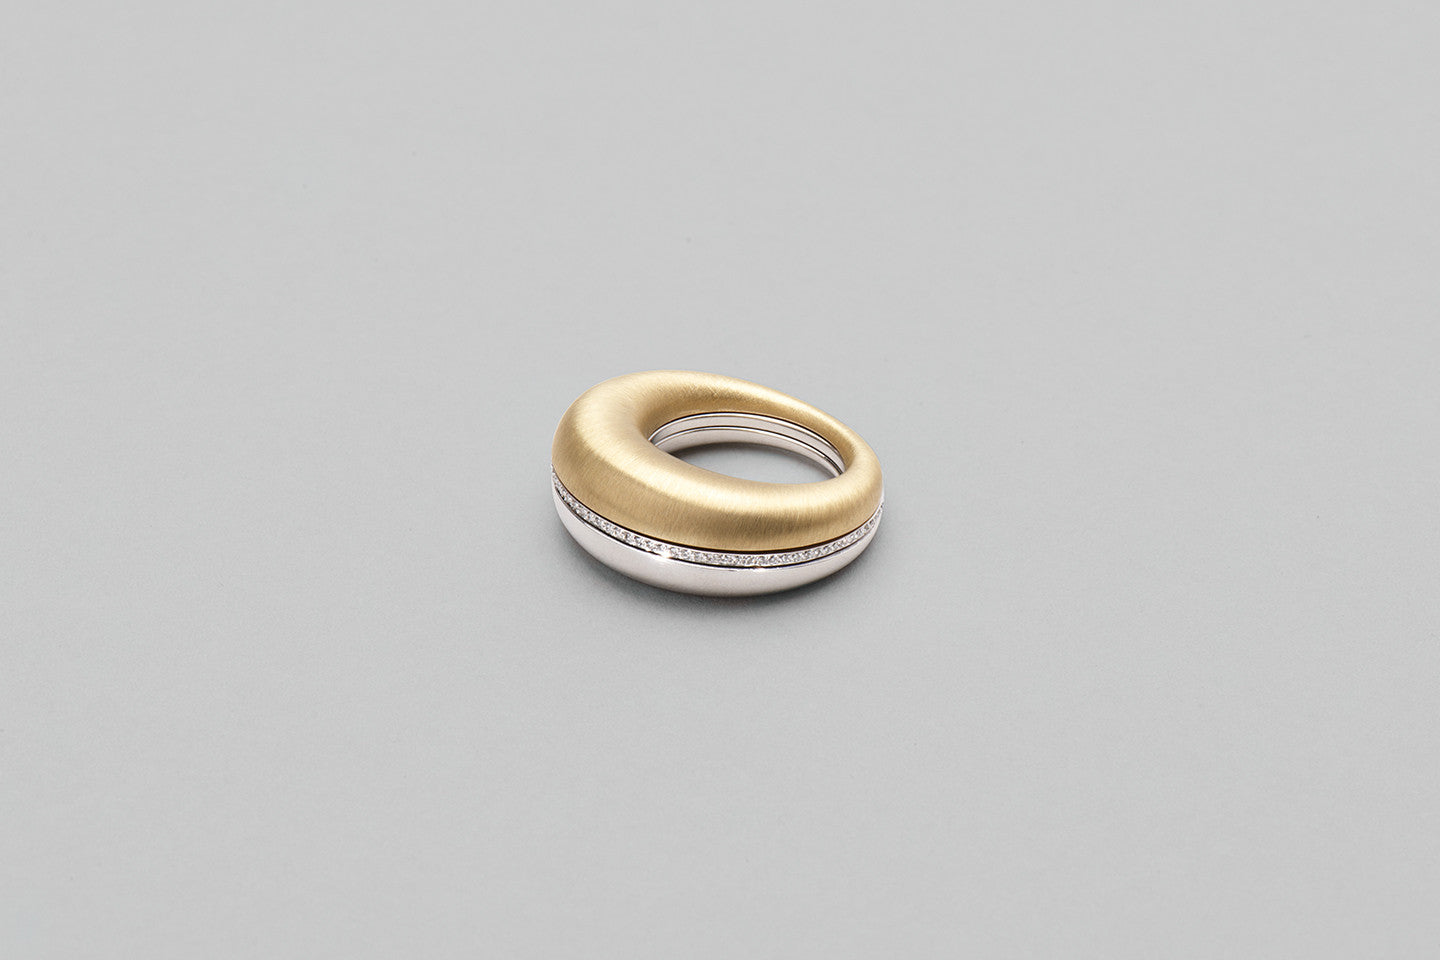 Beautiful Small Ring | 18K Yellow Gold and 18K White Gold with Brilliant cut diamonds